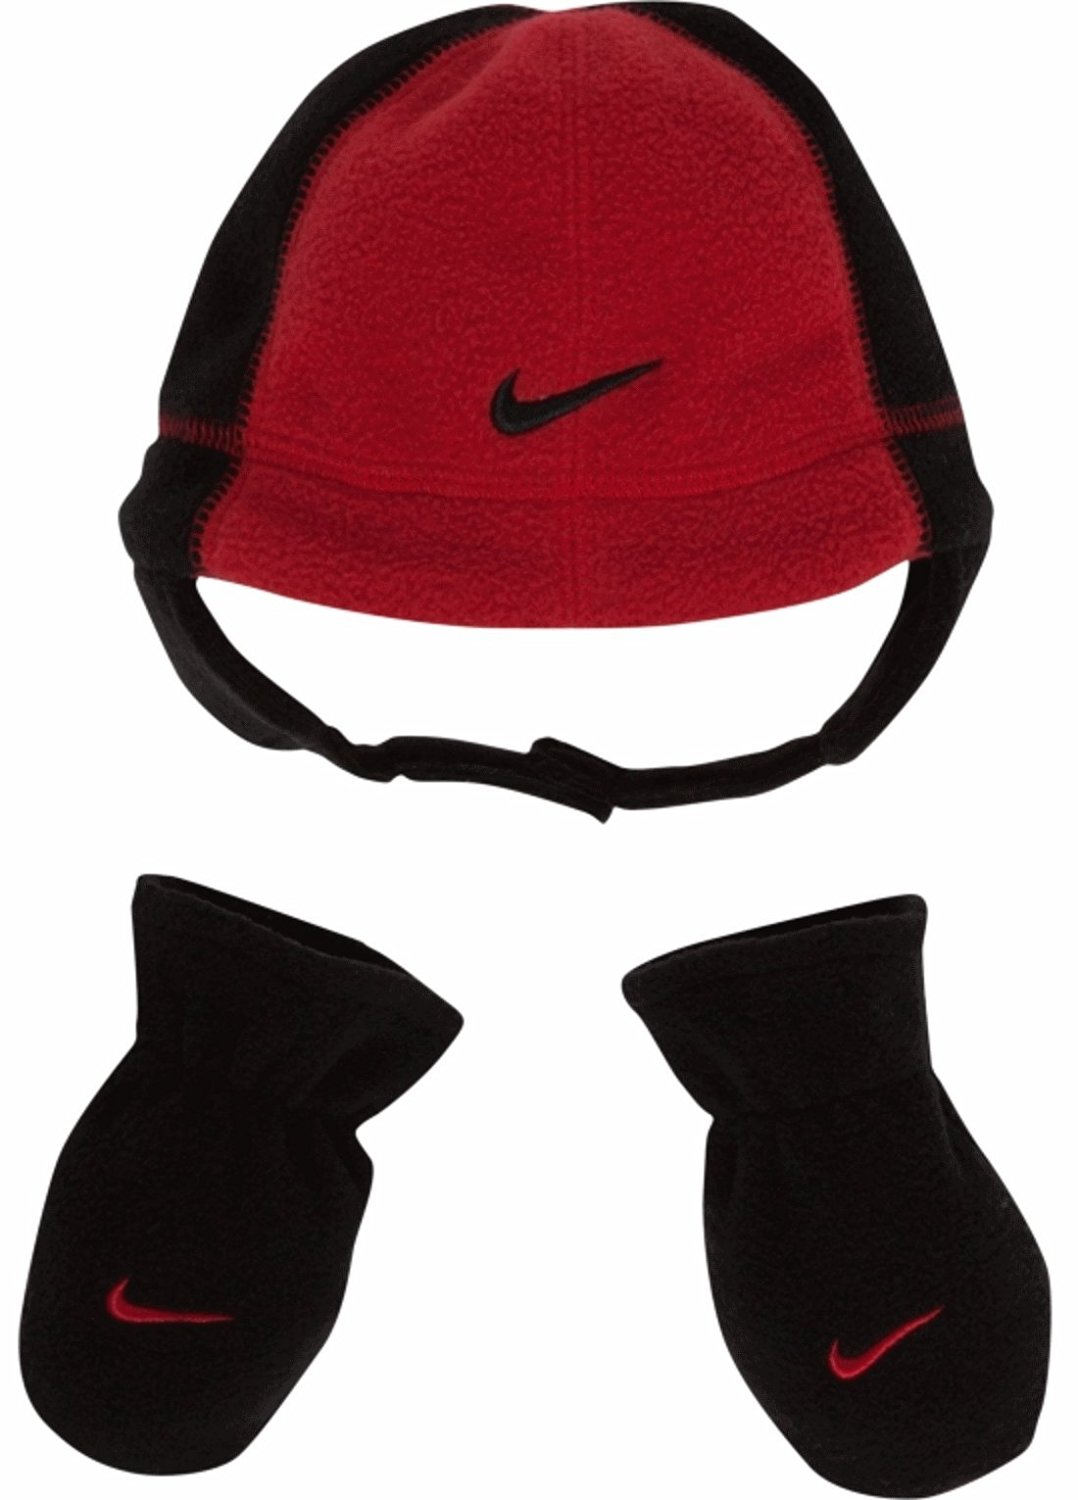 b217c6d1b69 Get Quotations · Nike Swoosh Logo Baby Boy s 12 24 Fleece Beanie Hat   Mittens  Set